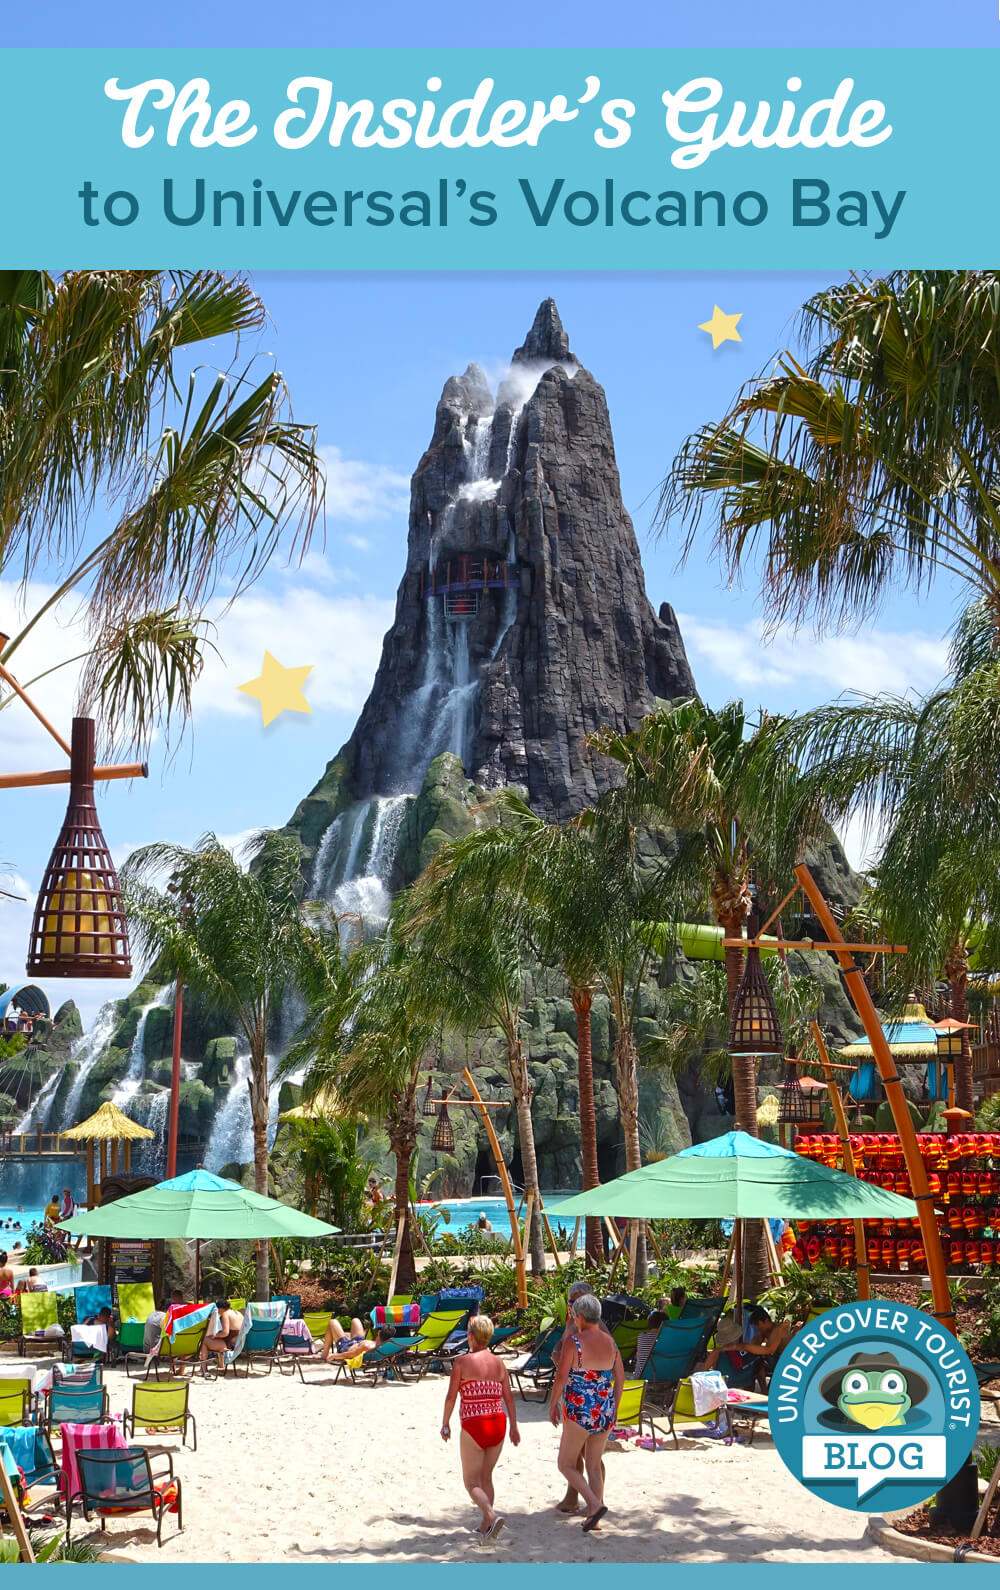 Guide to Universal's Volcano Bay